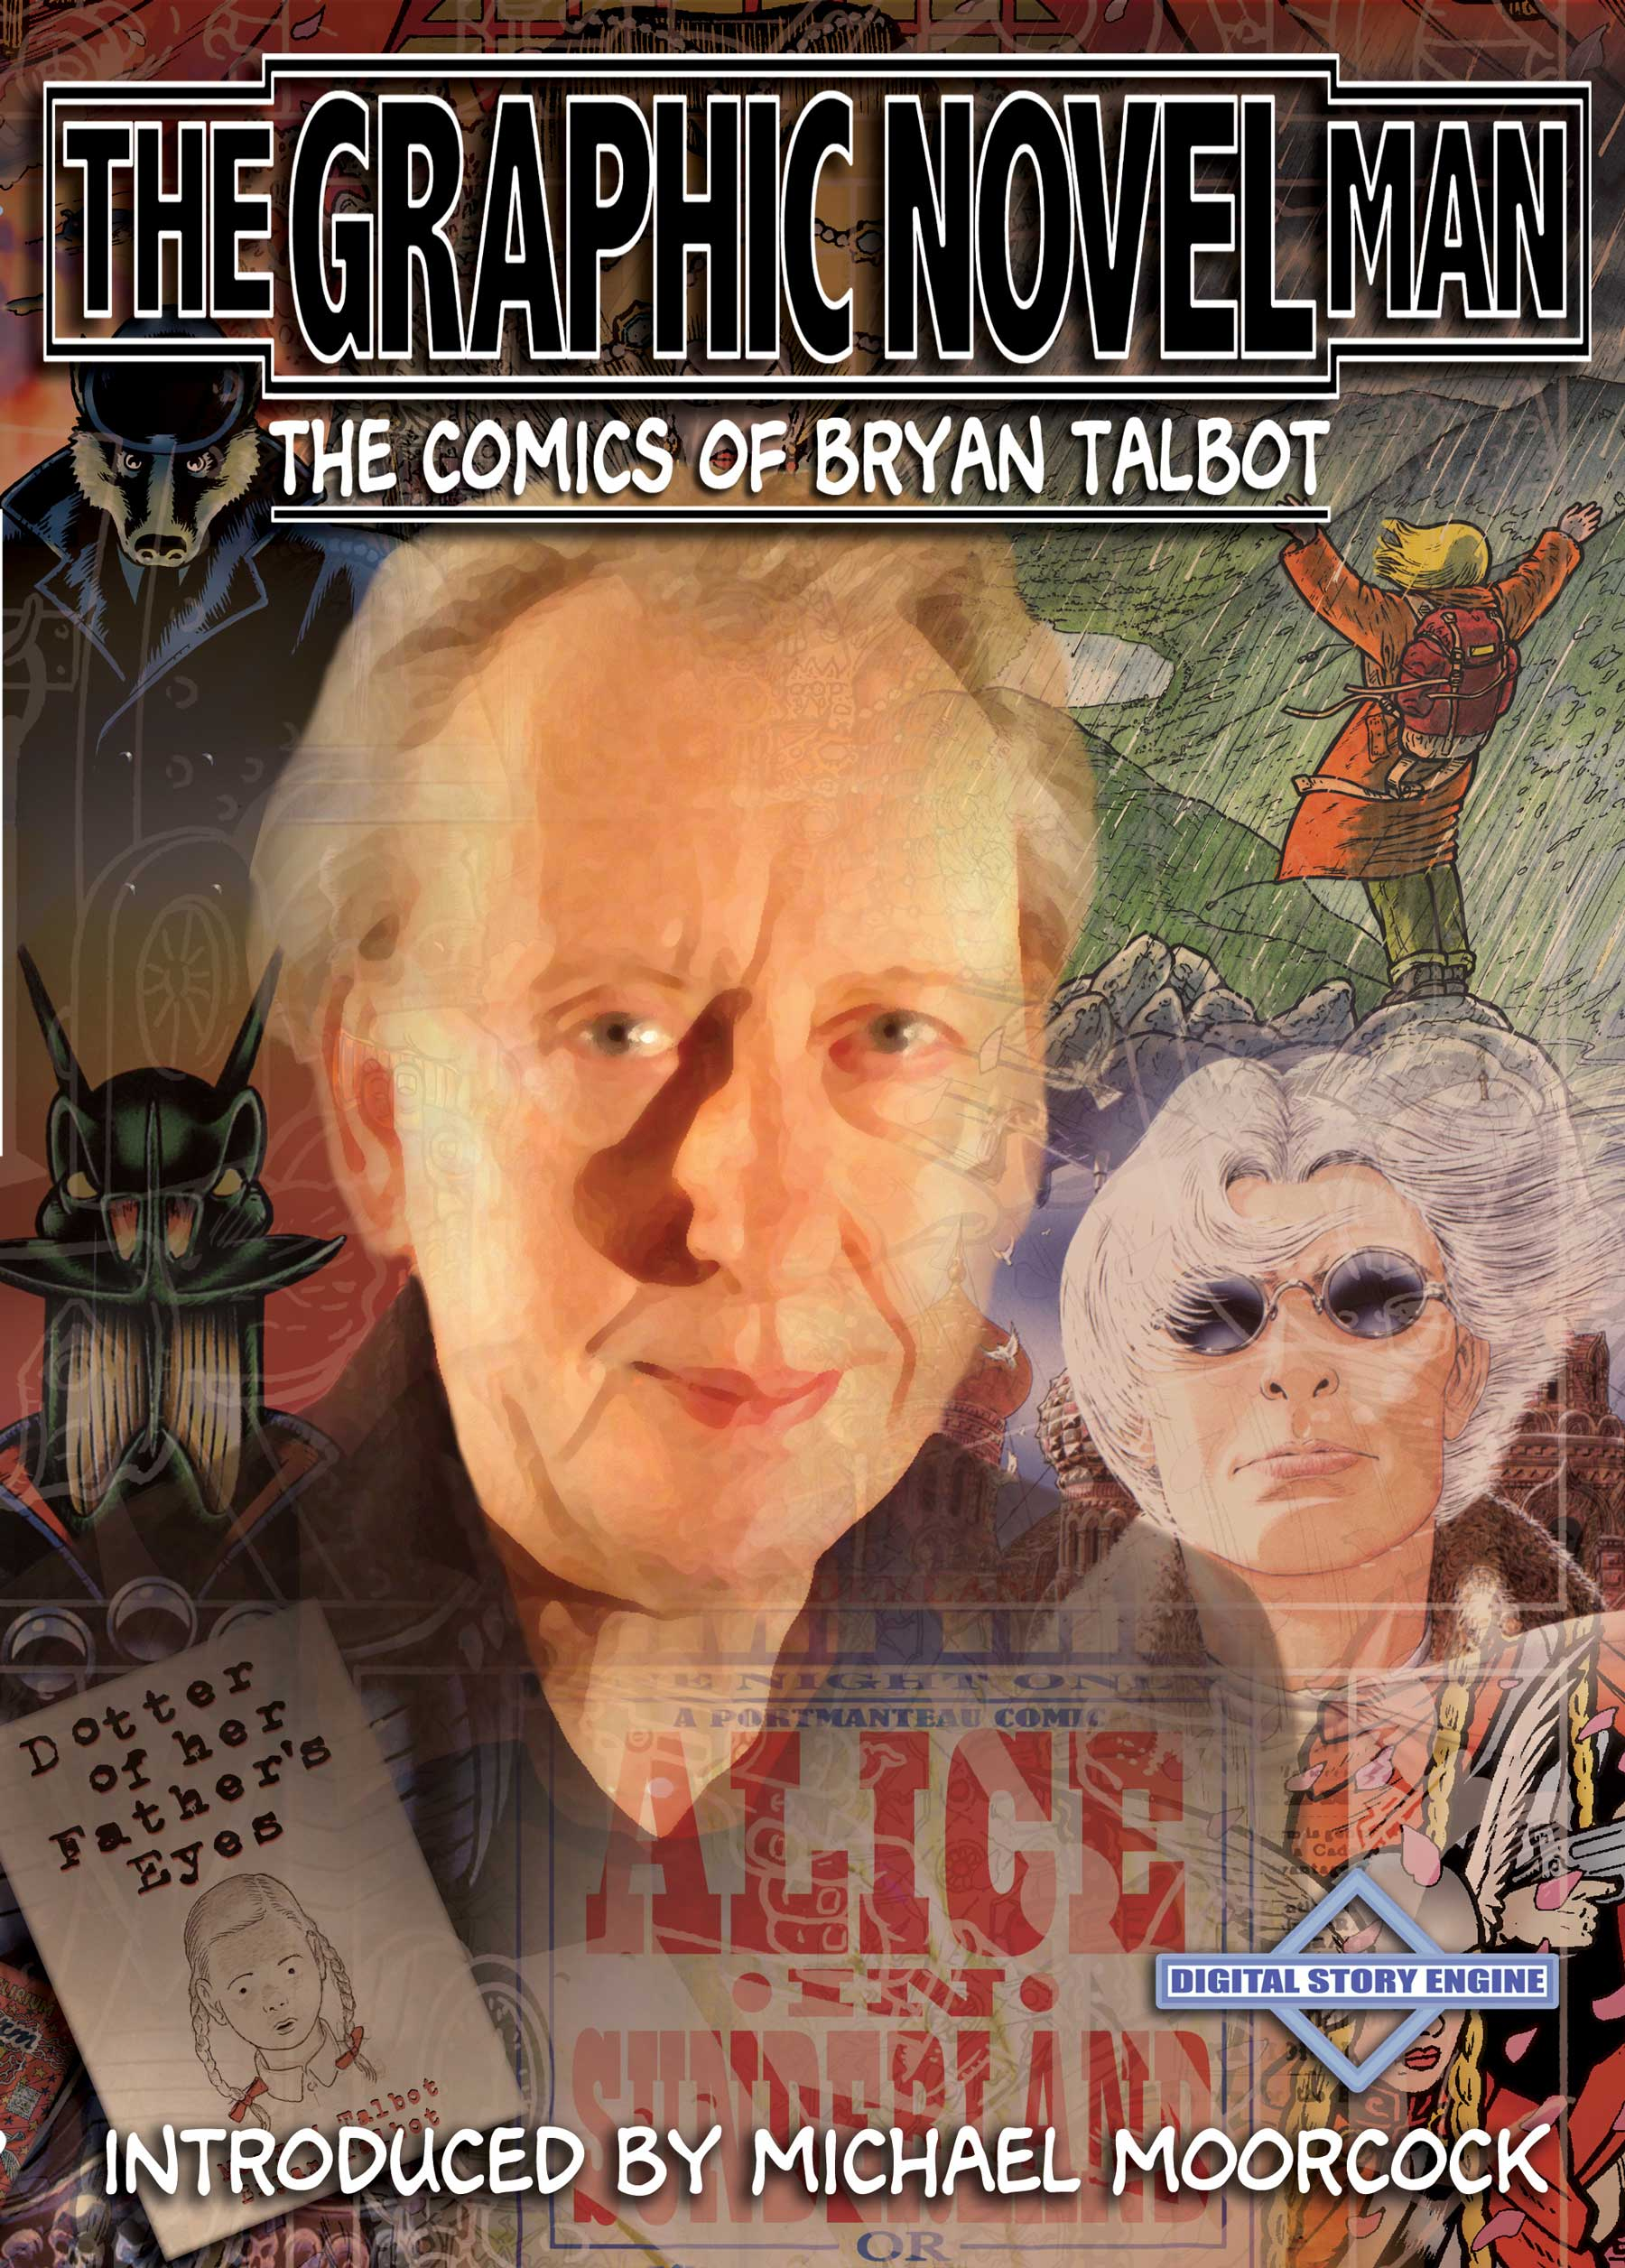 Bryan Talbot: Graphic Novel Man